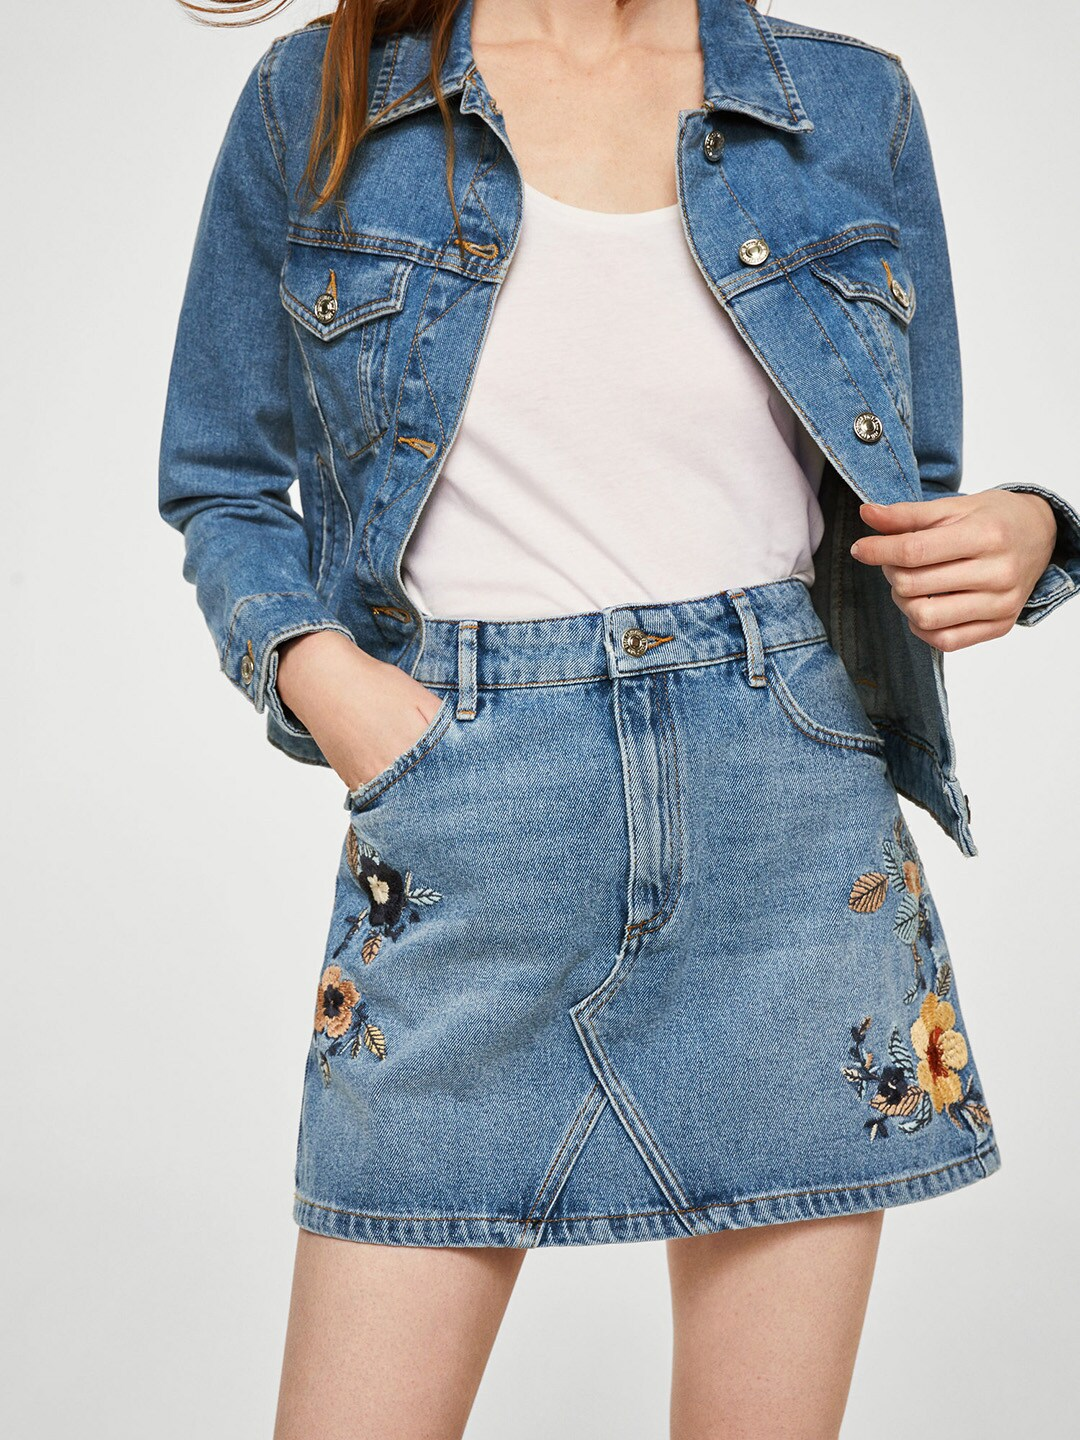 4b1e47546 Buy AMERICAN EAGLE OUTFITTERS Blue Washed Embroidered Denim Mini ...